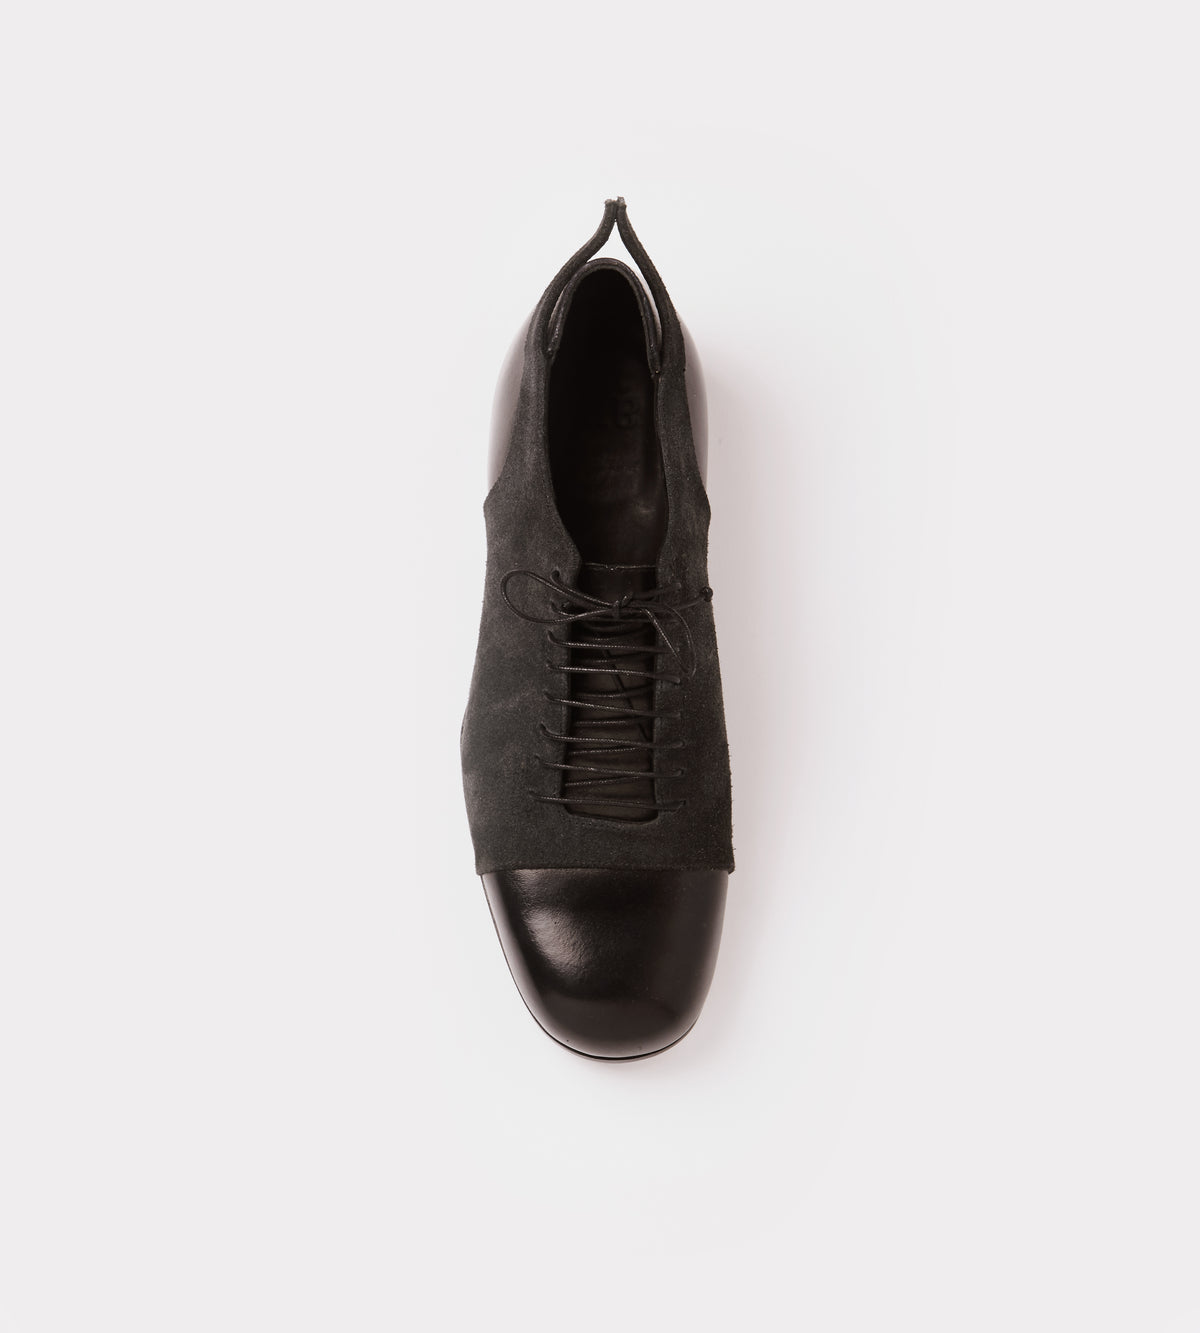 Black leather-suede lace up shoe top view